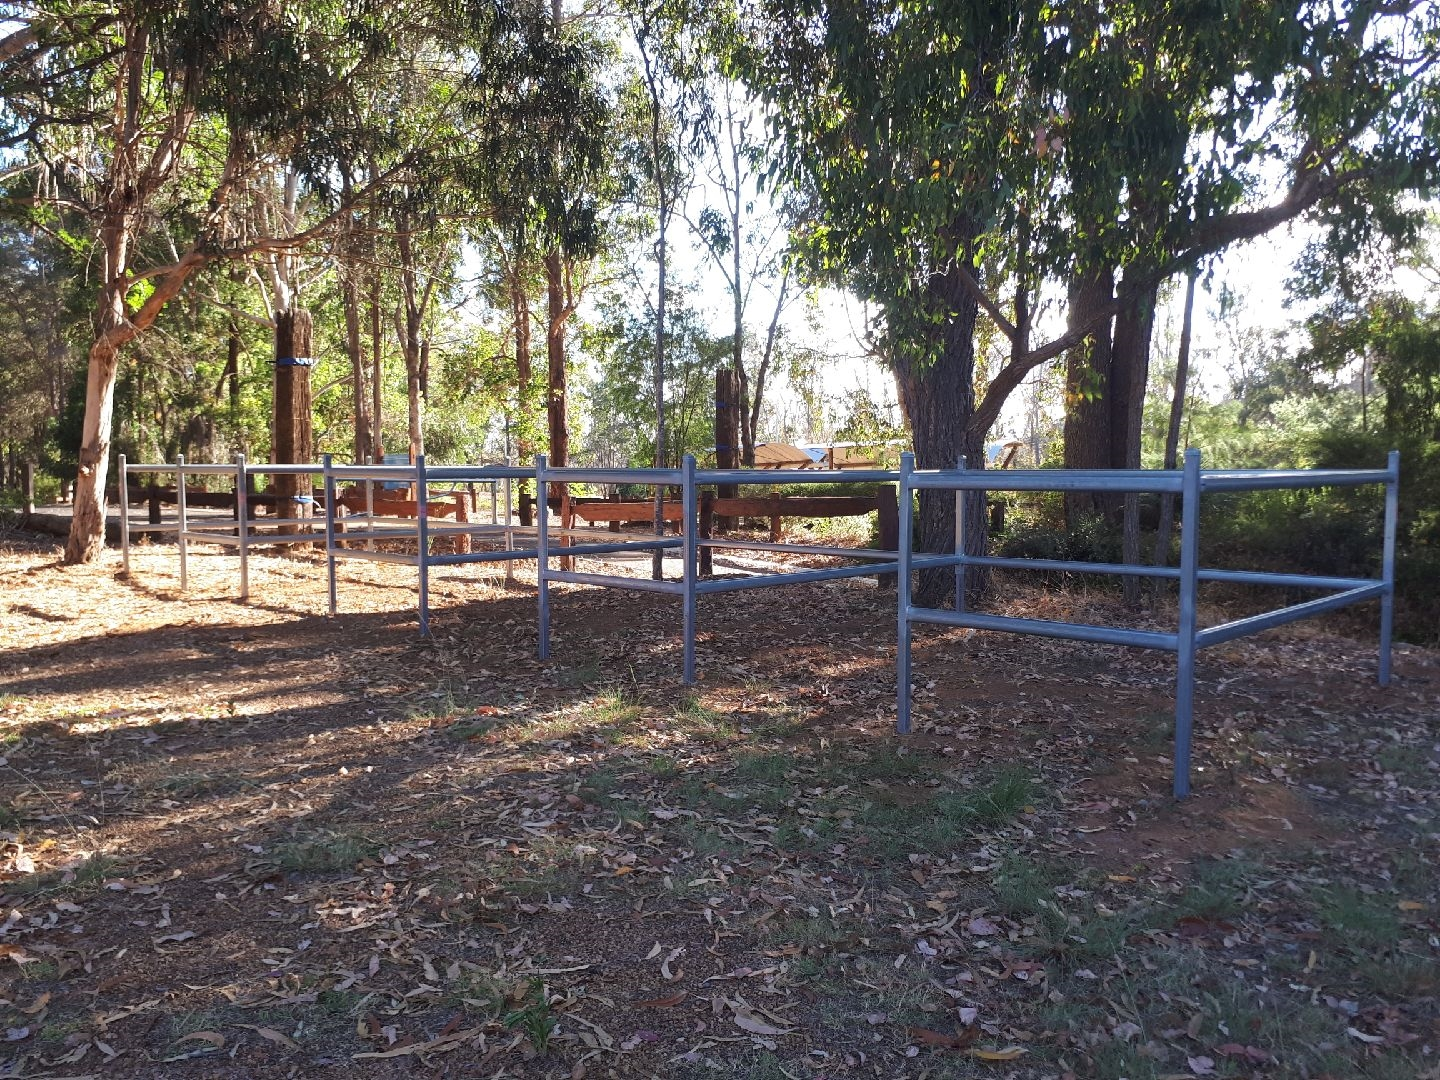 Dunnet Camp Site Nannup horse yards